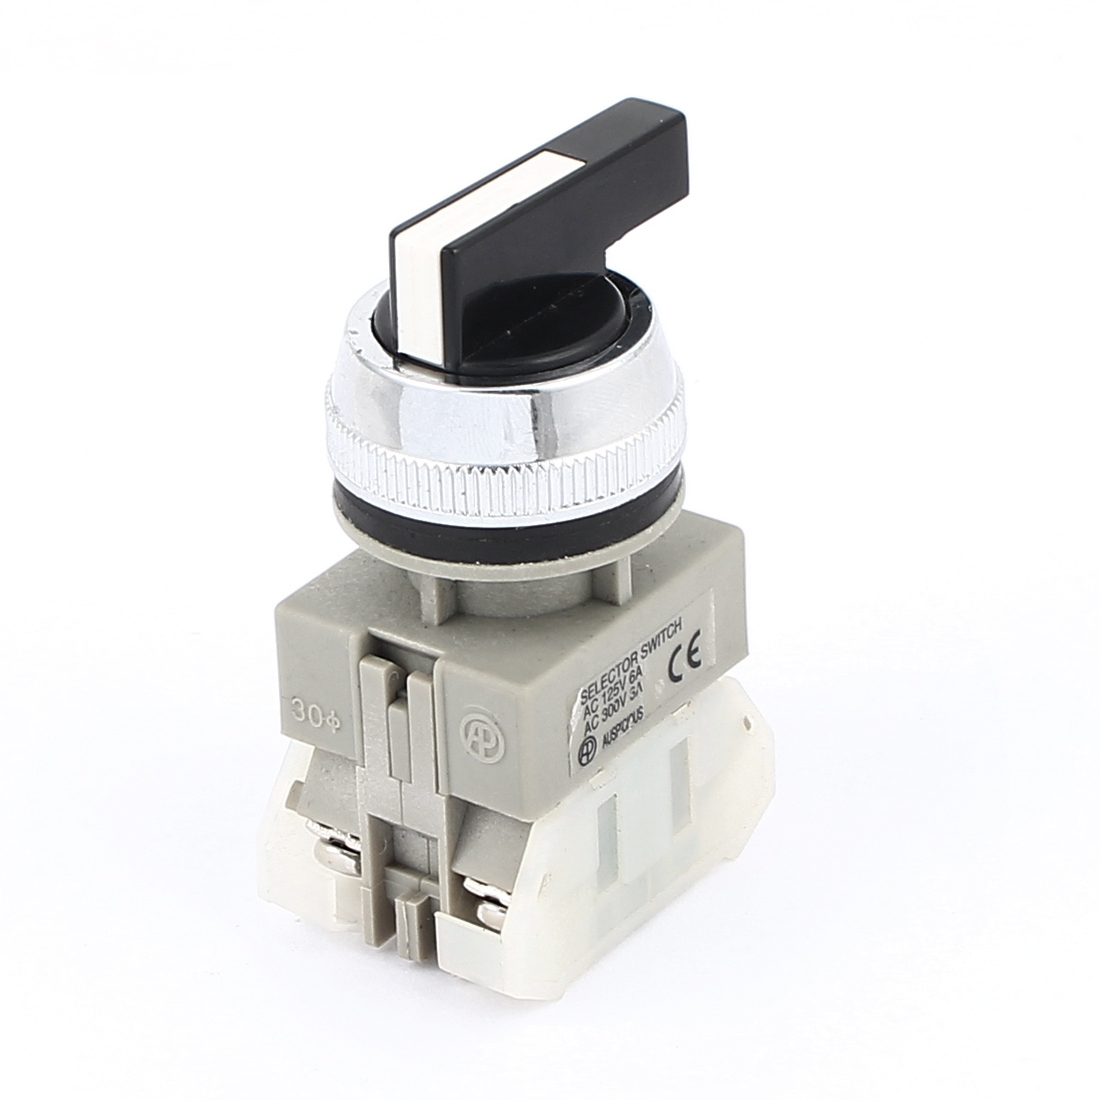 AC 125V/300V 6A/3A NO+NC 4-Pin DPST 3 Position Rotary Selector Switch